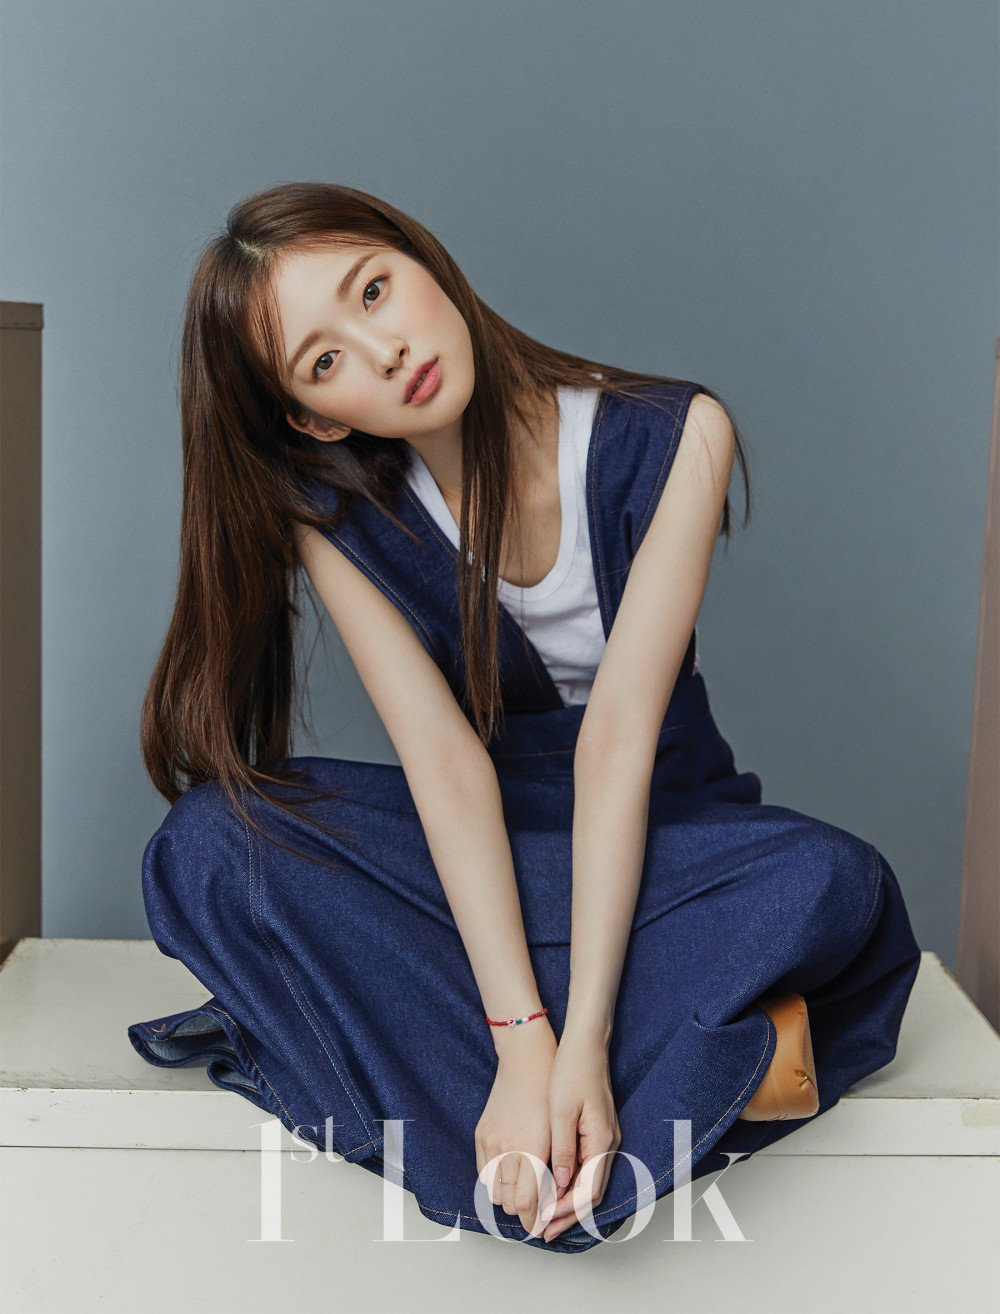 Oh My Girl's Arin Shows Matured and Elegant Side for 1st Look Magazine Photo Shoot